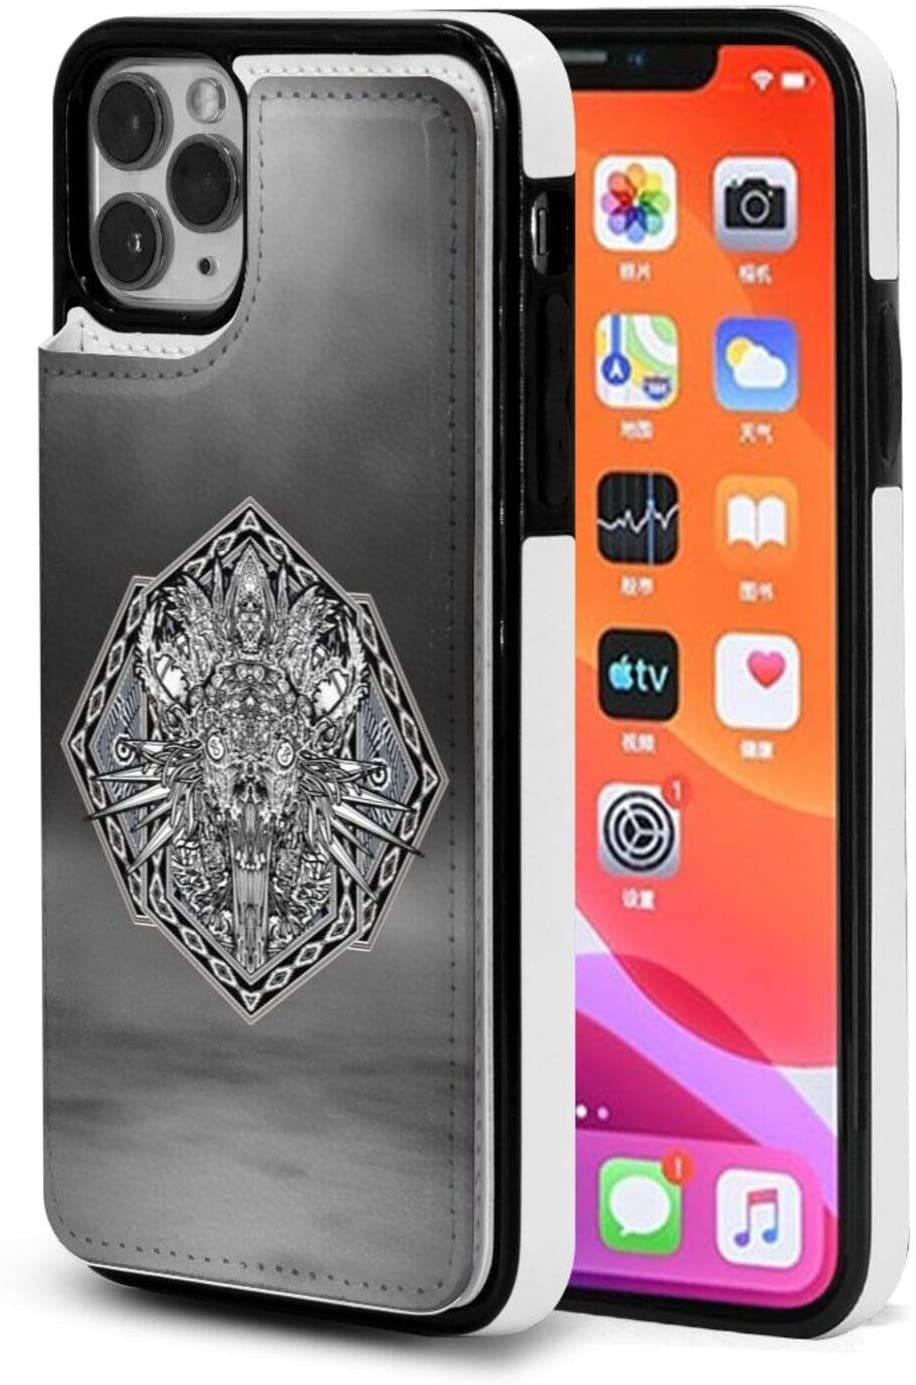 Iphone 11 Pro Max Flip Case Personalized Design Customization Totem Guardian With Credit Card Slot Holder & Double Magnetic Clasp